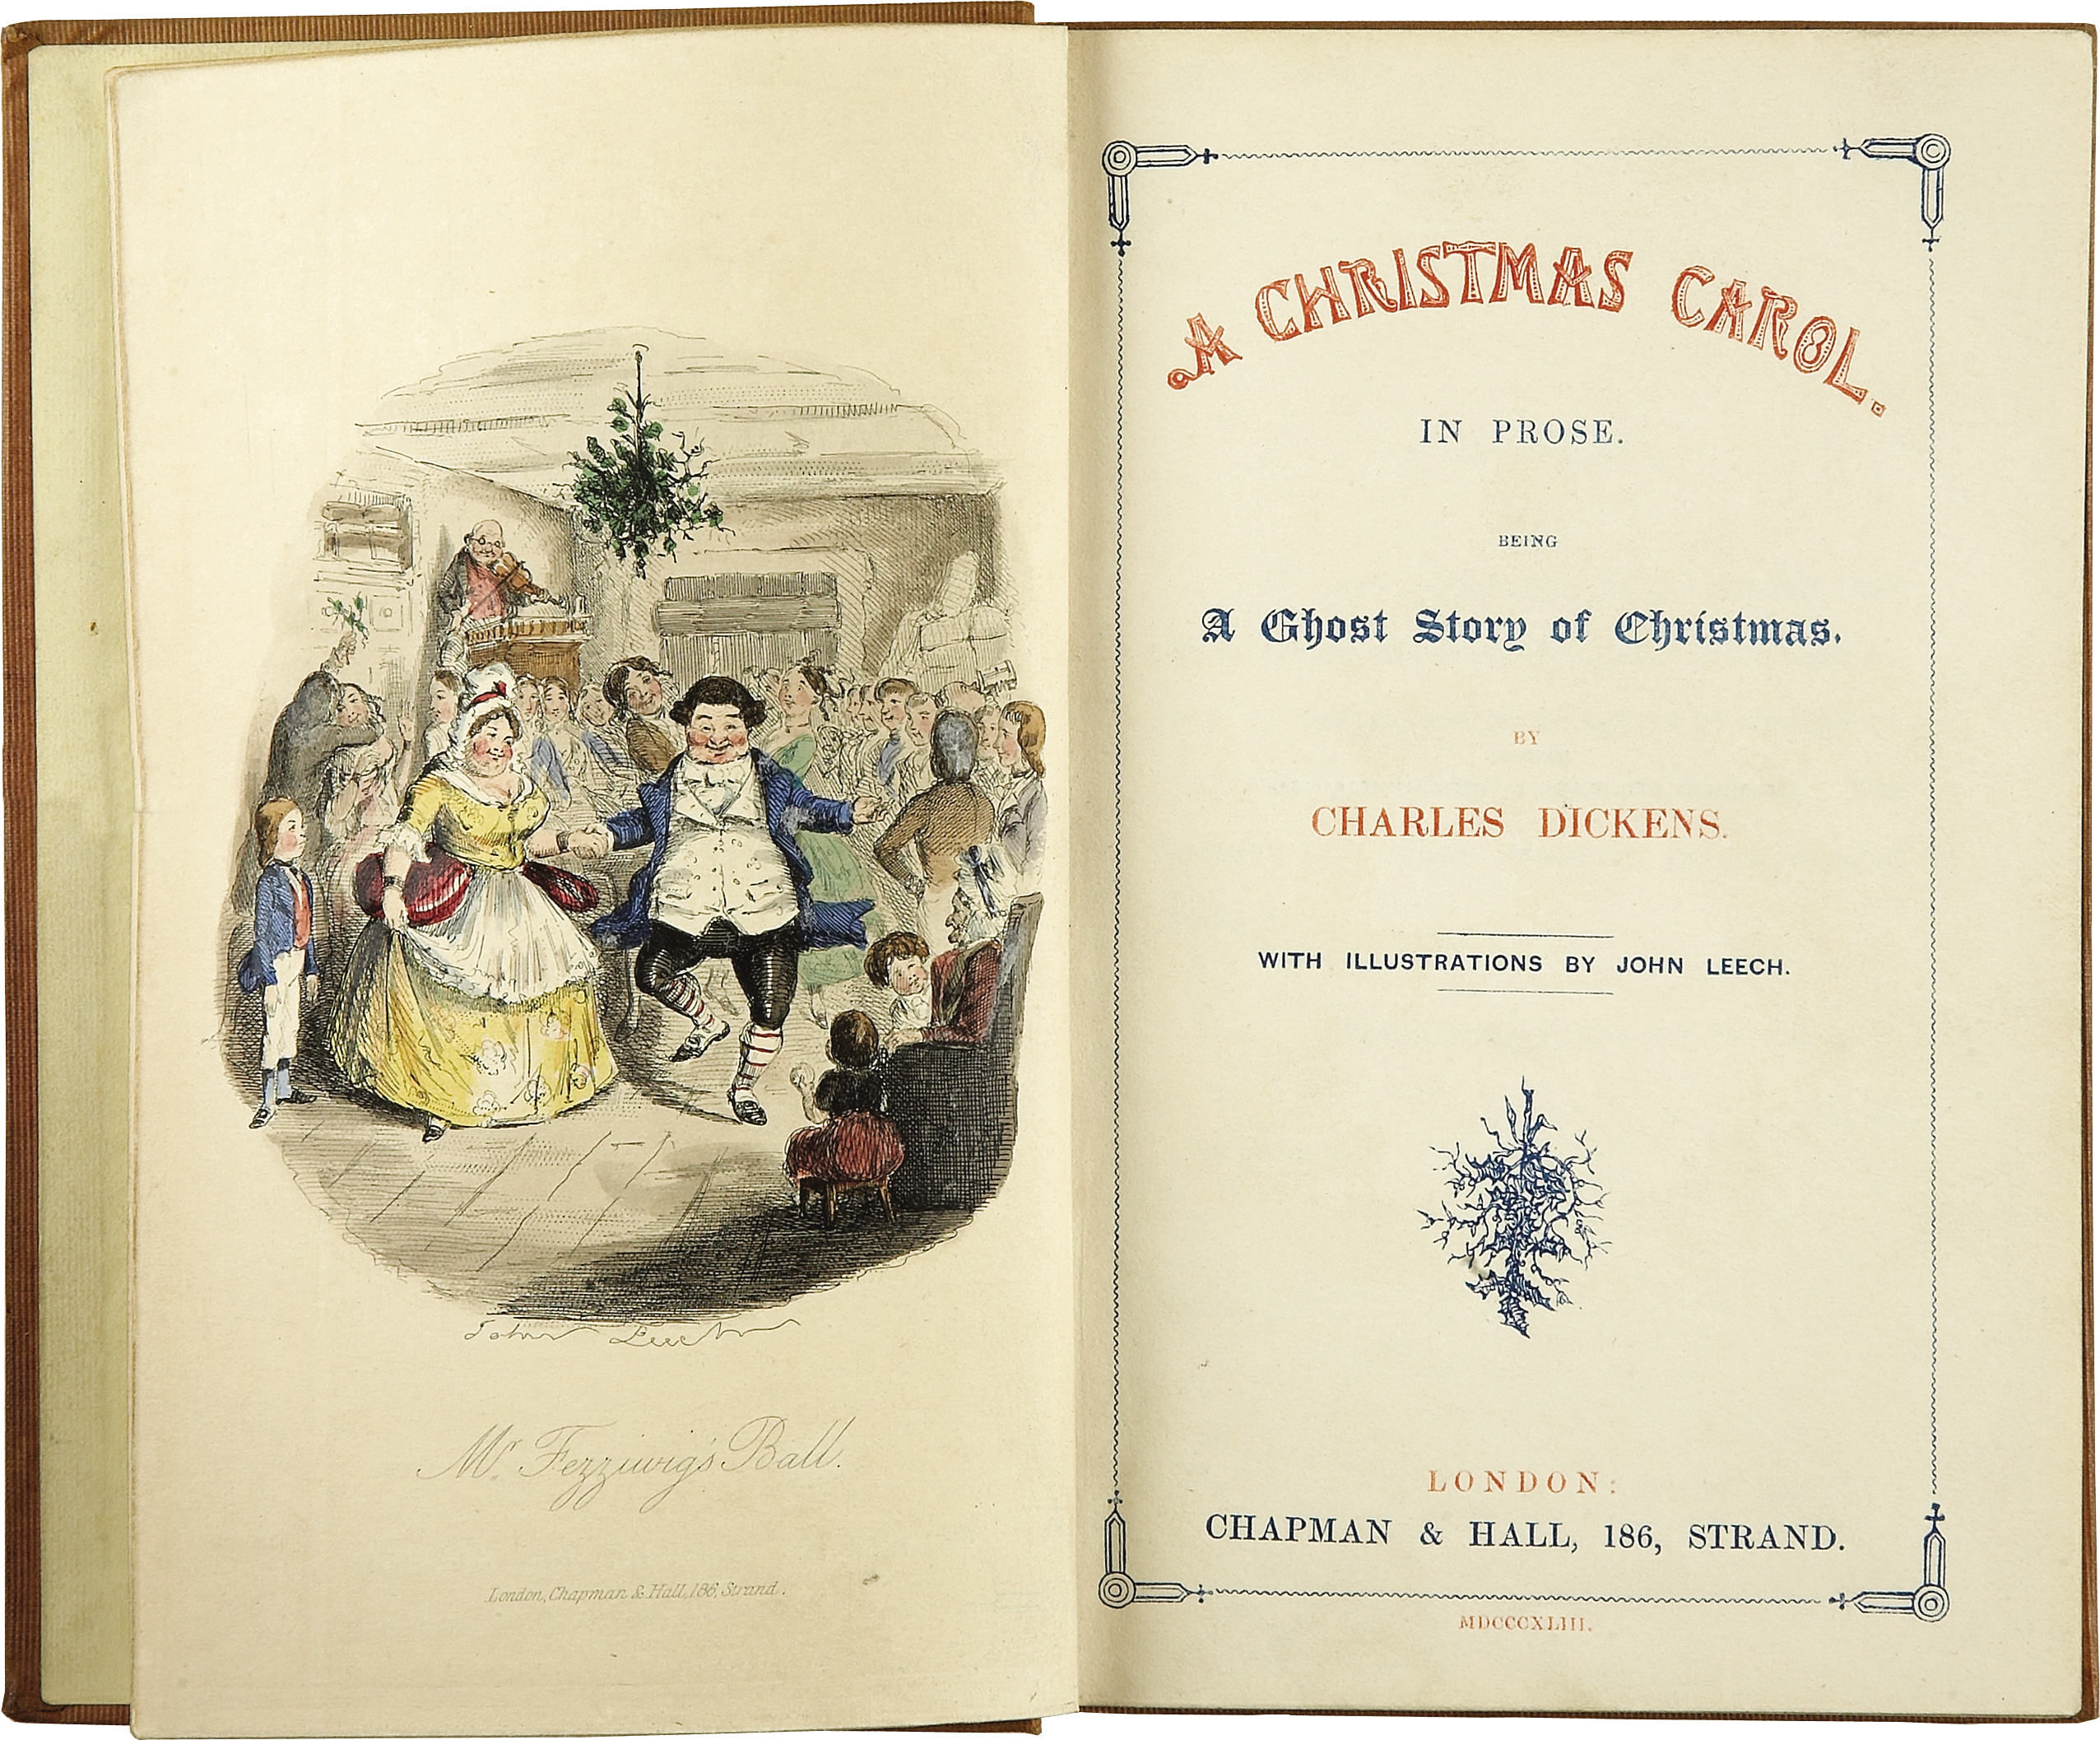 4-charles-dickens-a-christmas-caroltitle-page-first-edition1843